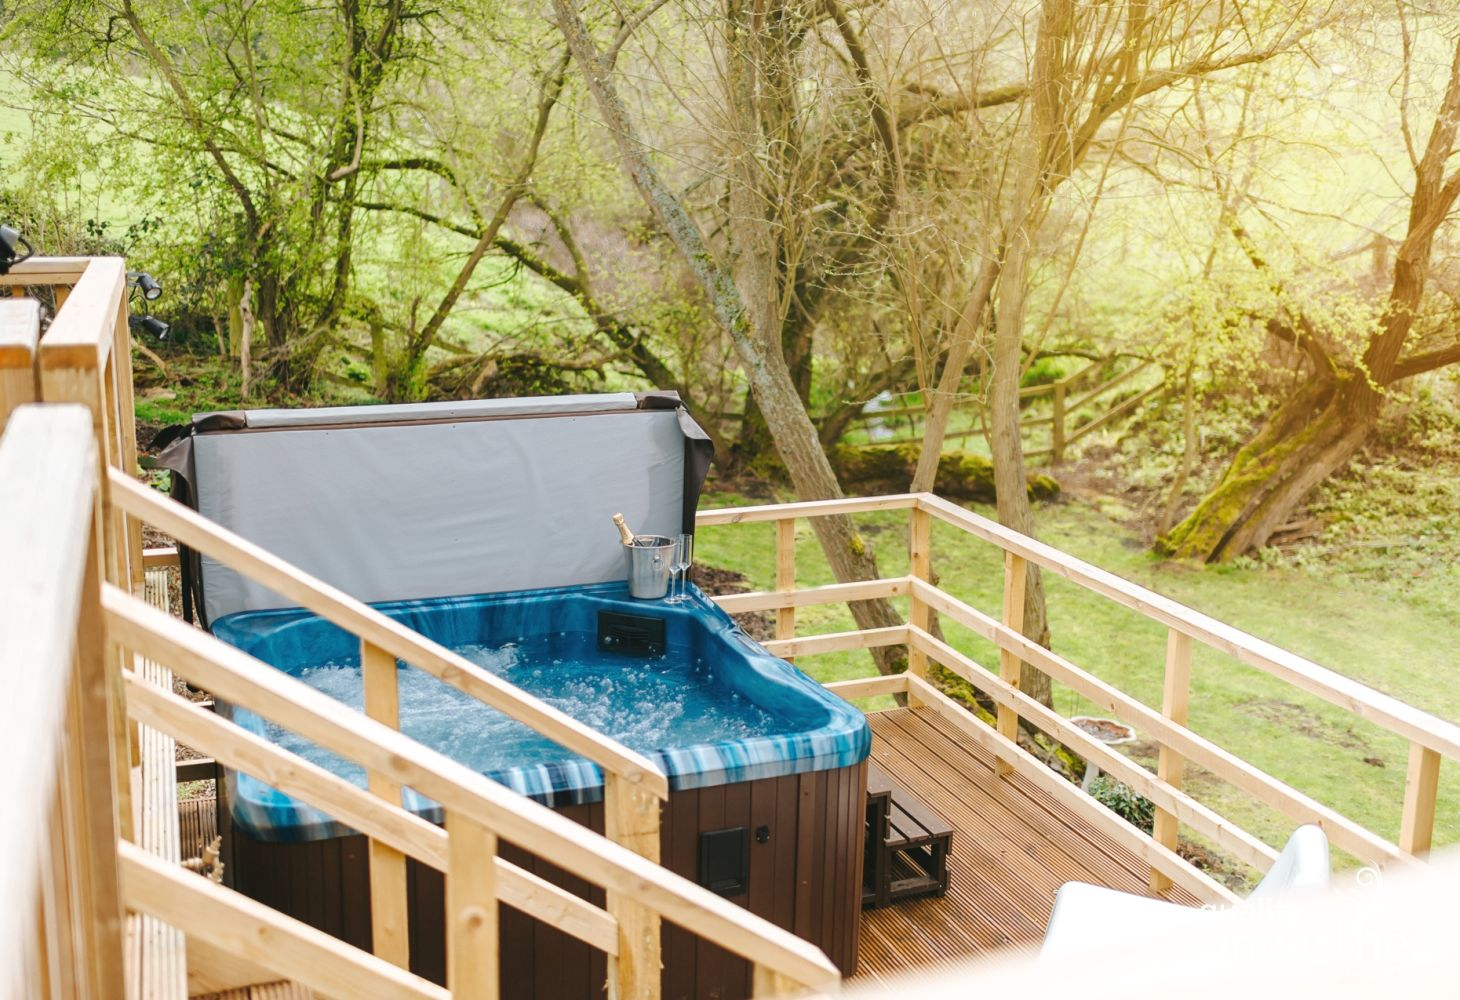 The hot tub is large enough for a family glamping holiday